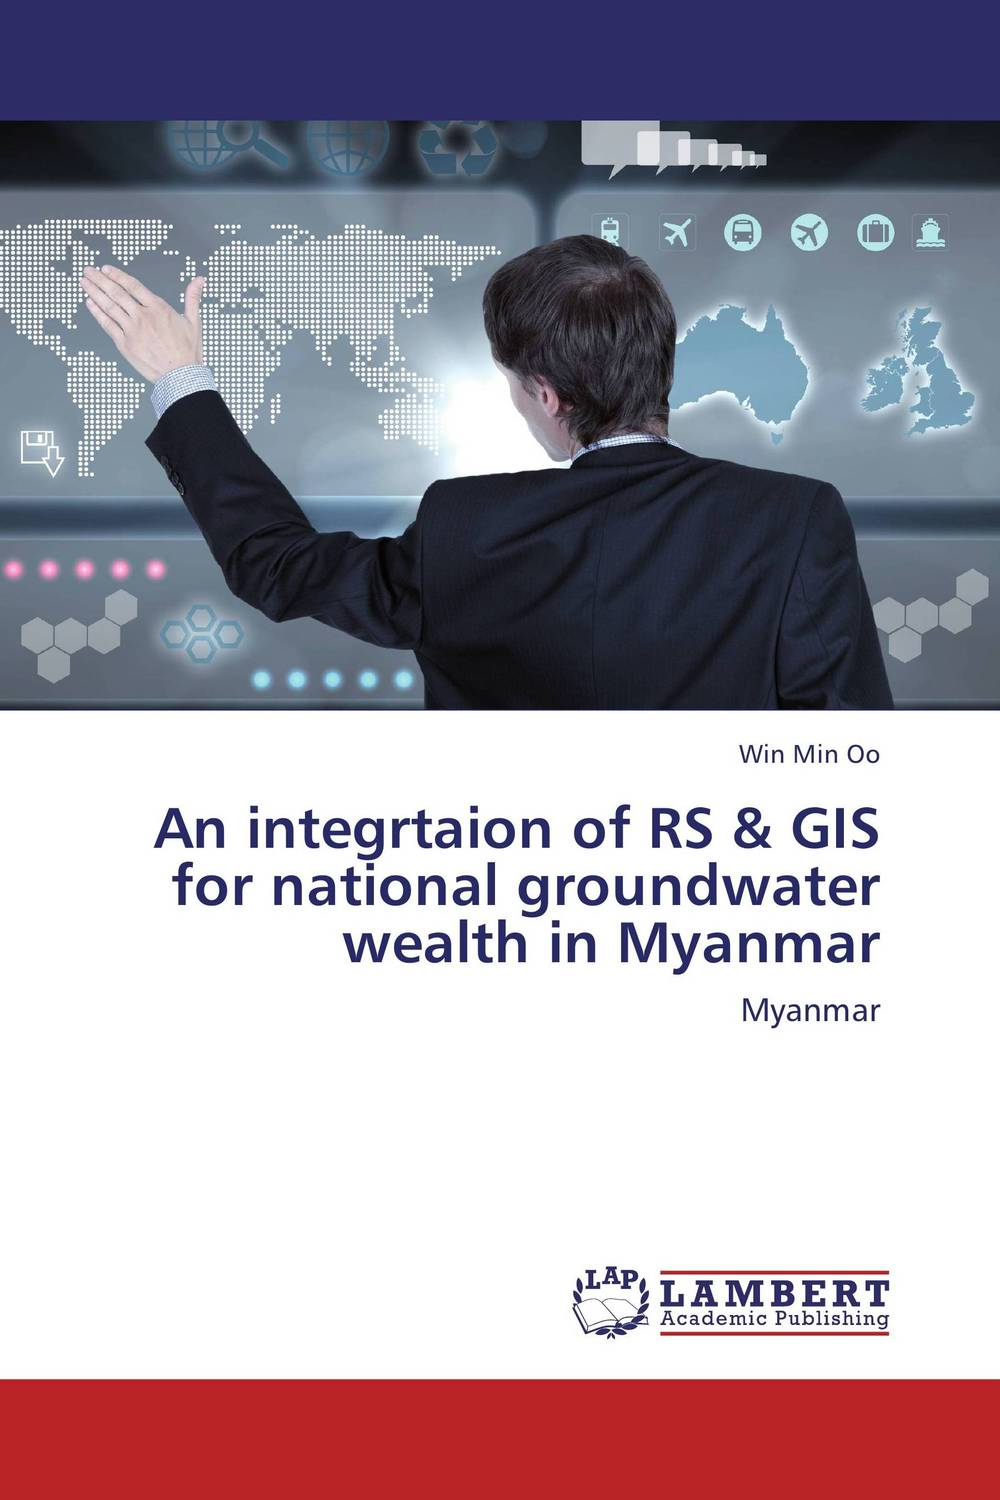 An integrtaion of RS & GIS for national groundwater wealth in Myanmar